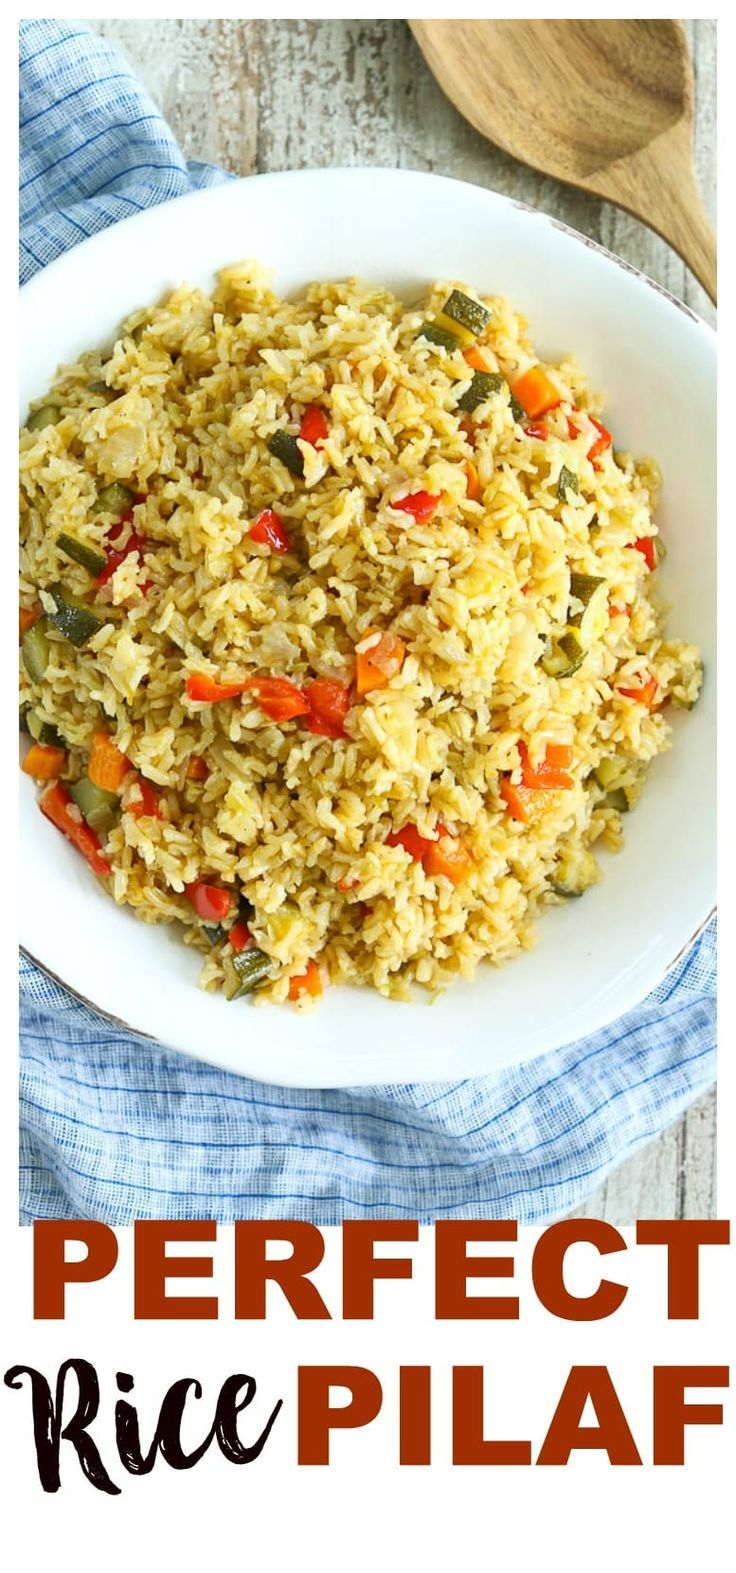 Perfect Rice Pilaf with Vegetables